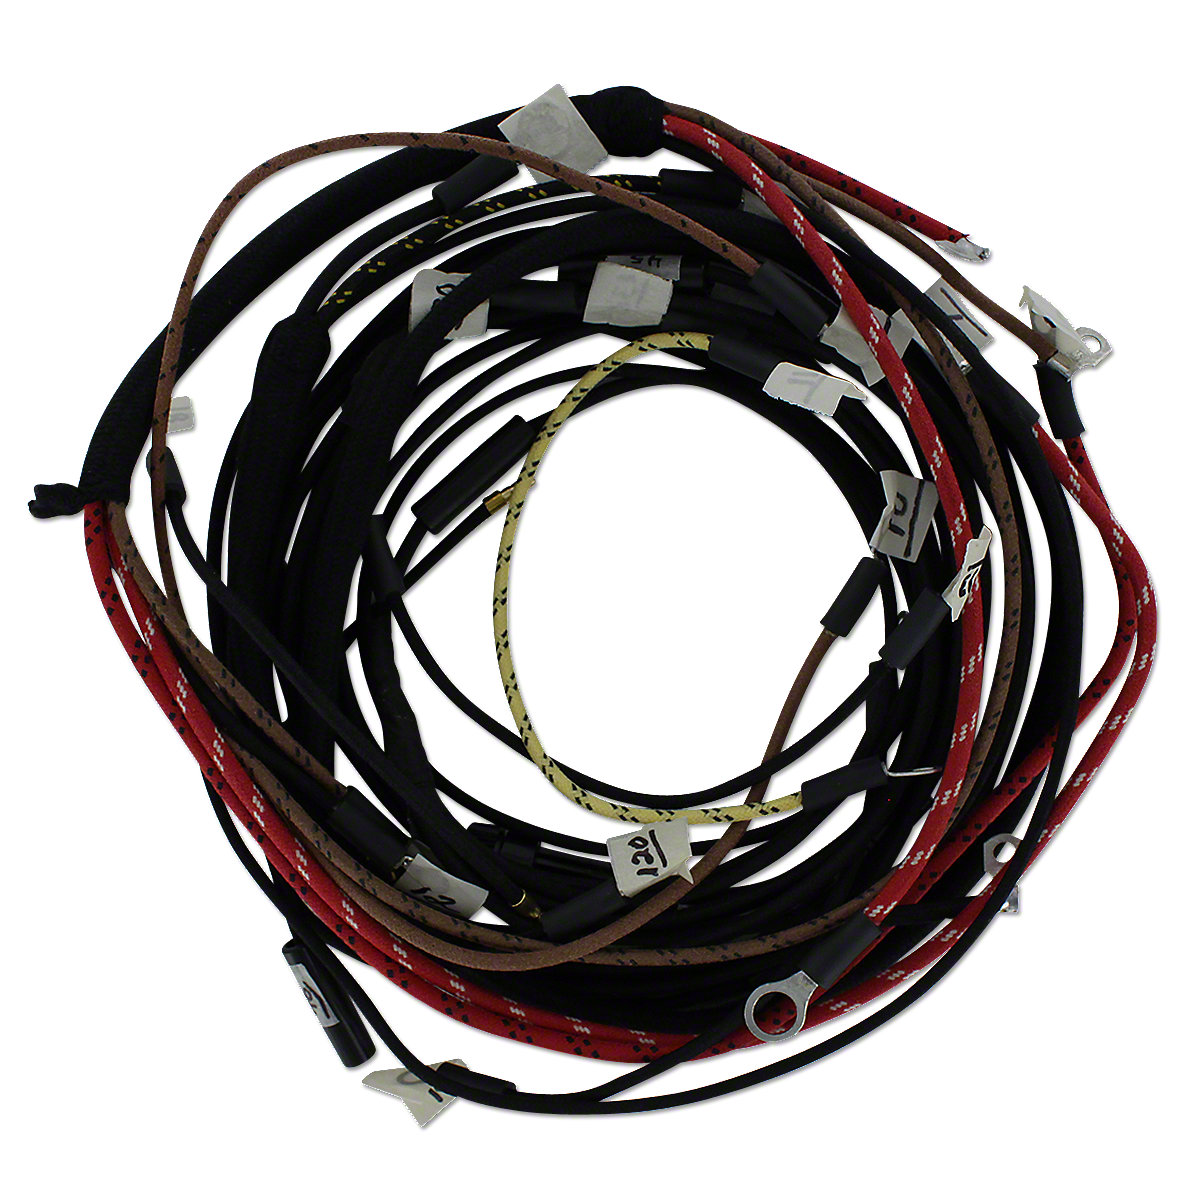 Wiring Harness For Massey Ferguson: TO30.